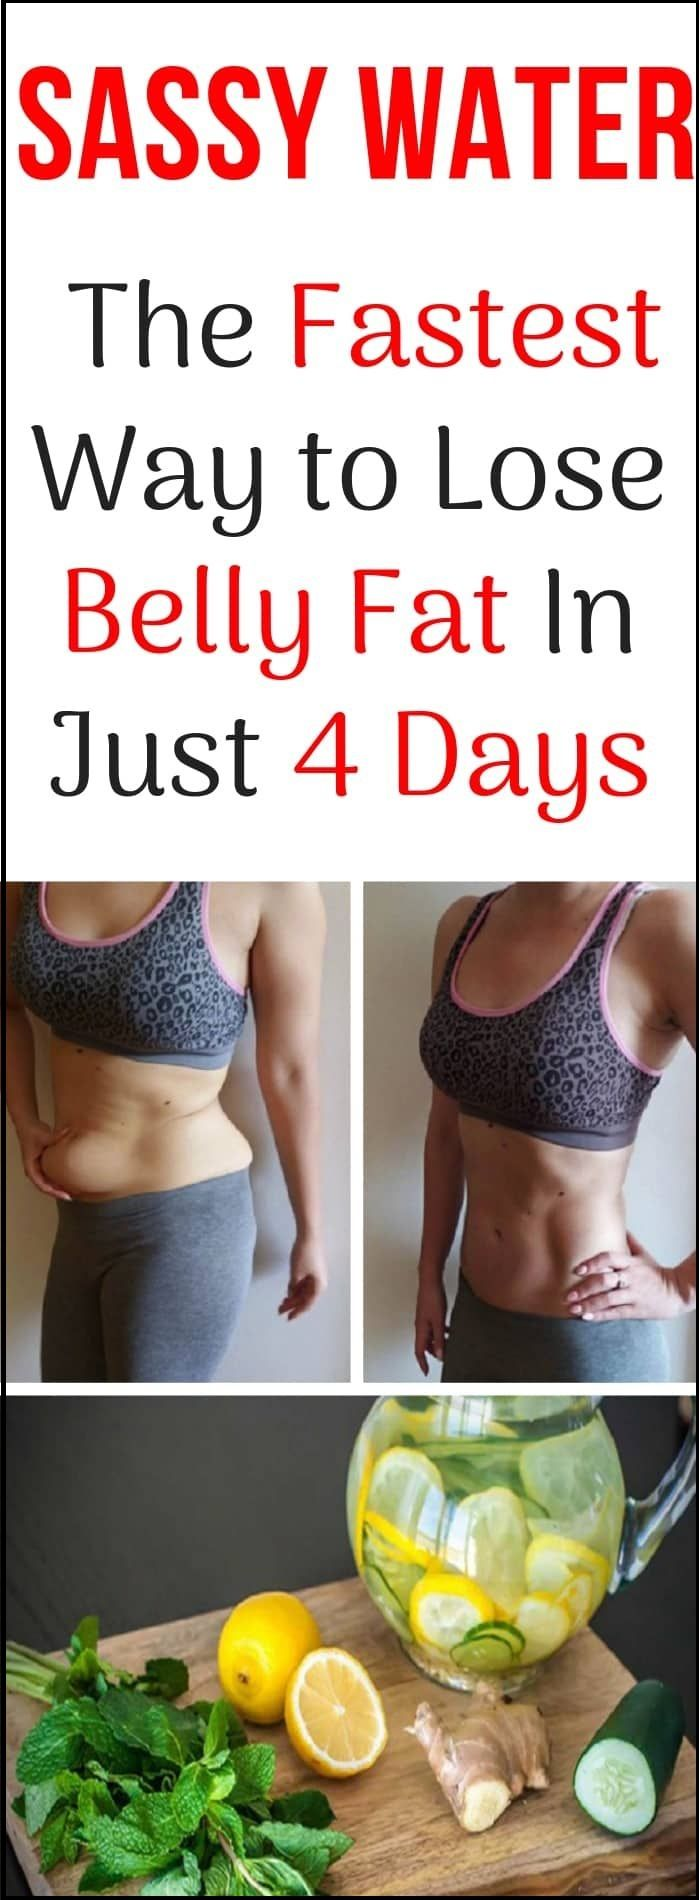 Sassy Water The Fastest Way To Lose Belly Fat In Just 4 Days Home